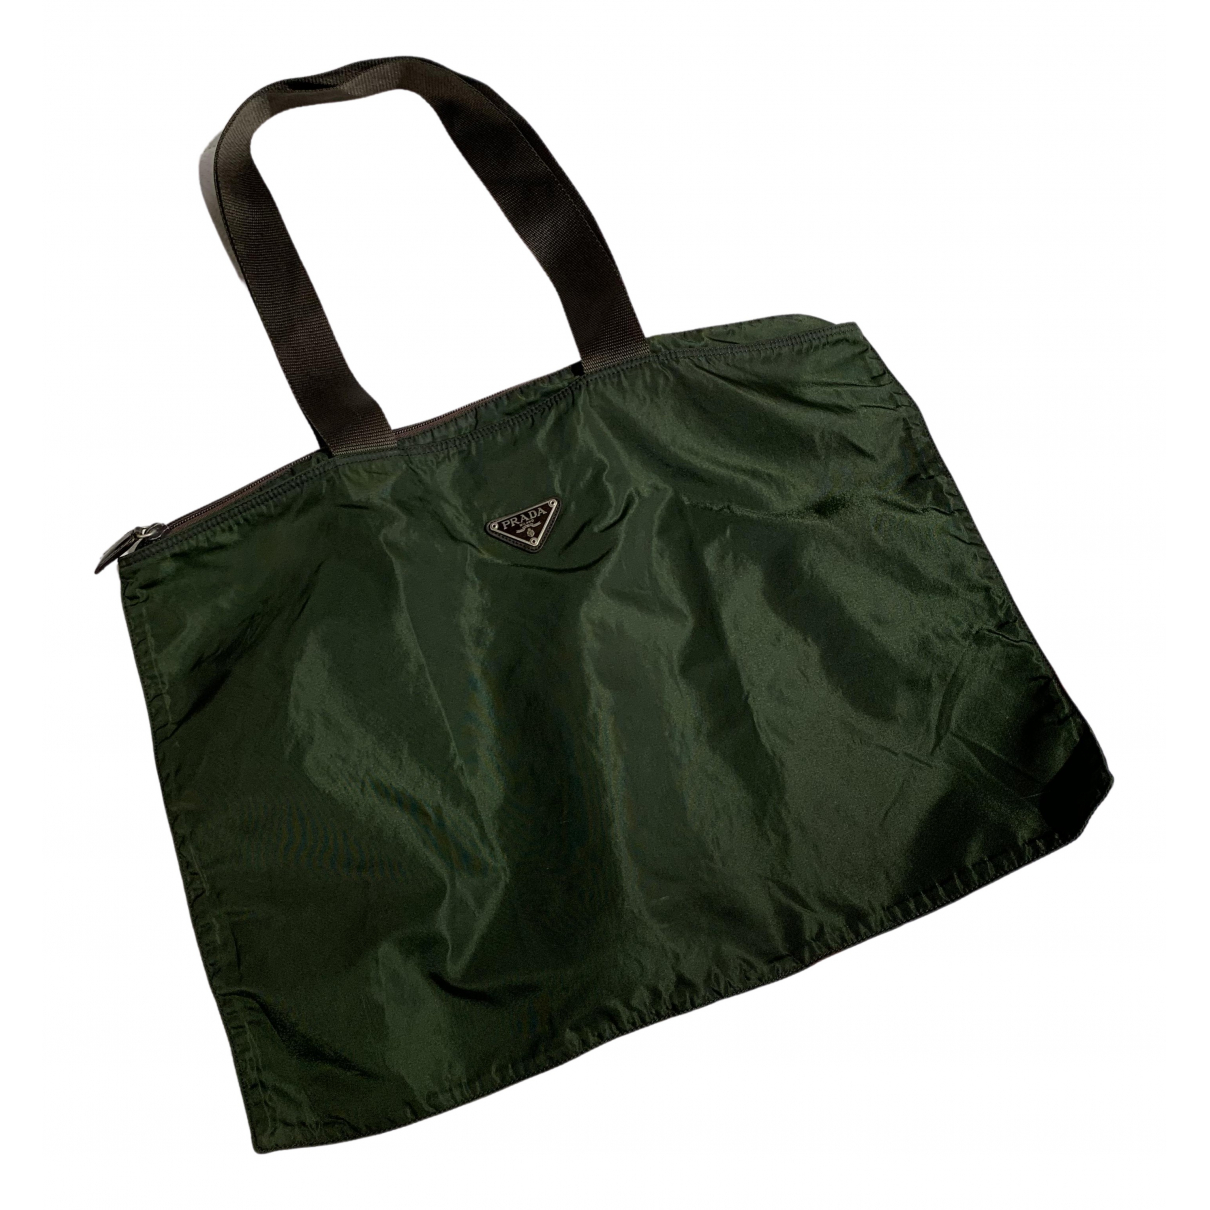 Prada \N Green Cloth handbag for Women \N